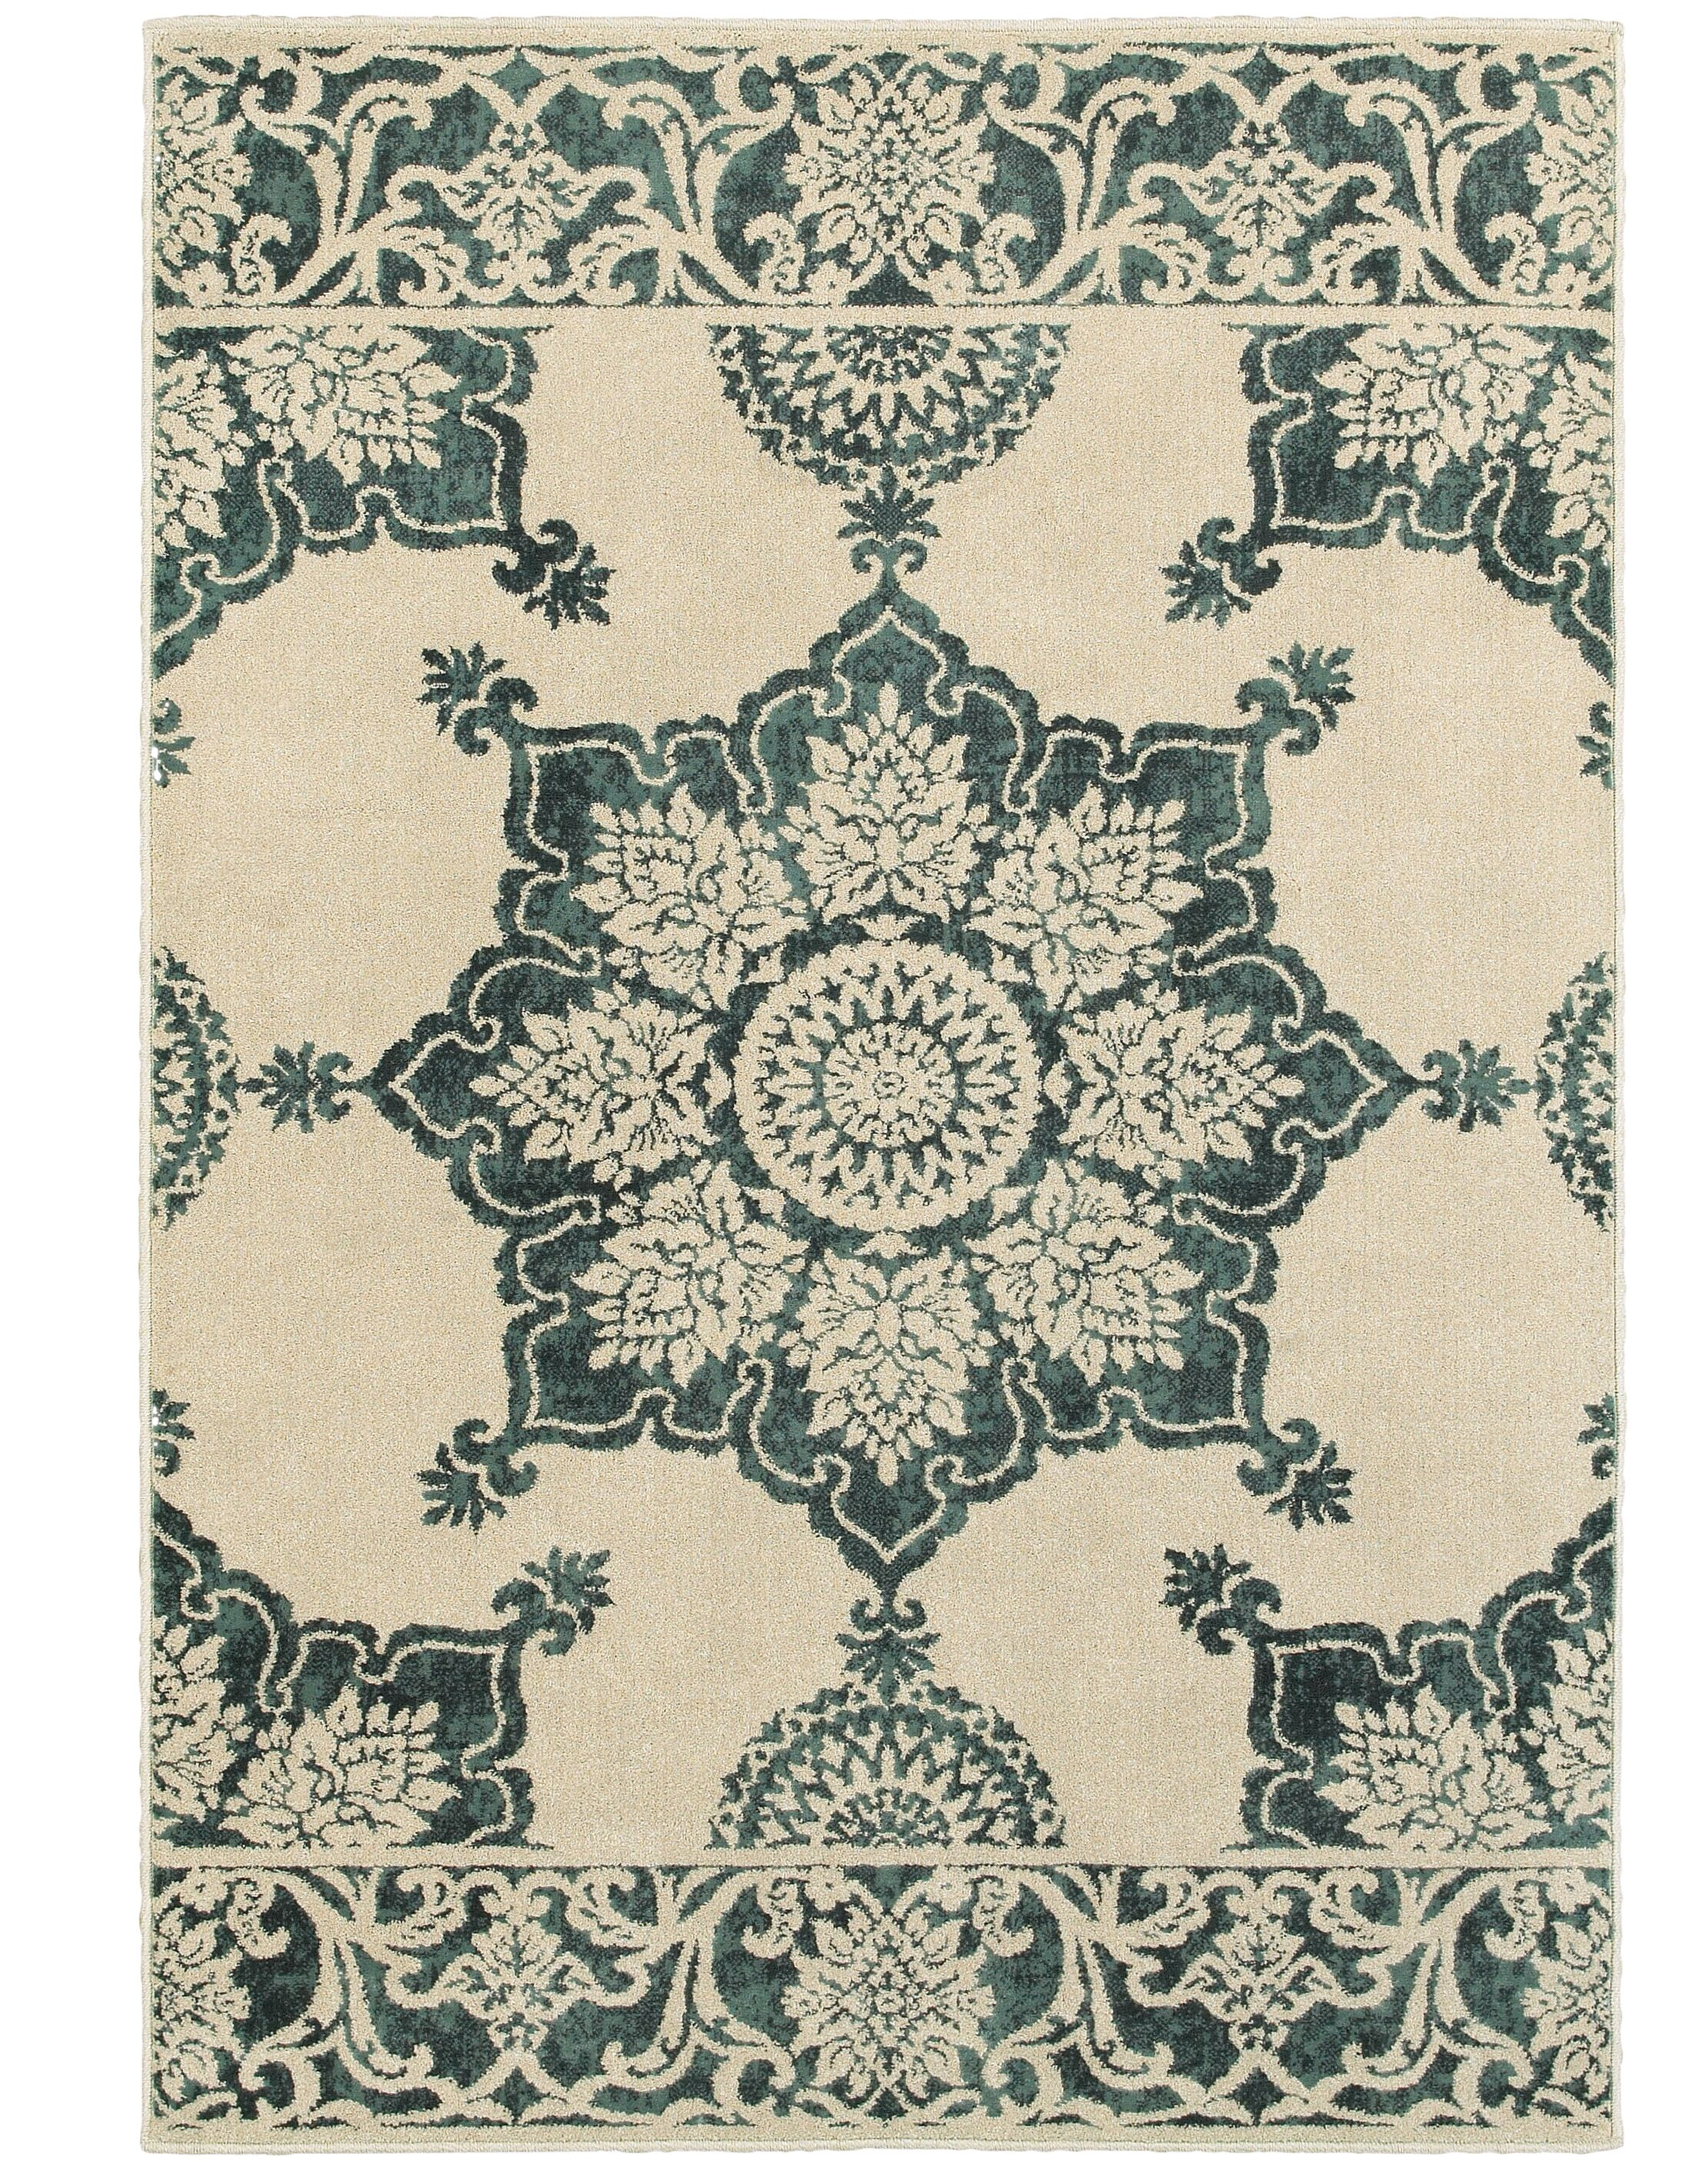 Ravenwood Beige/Green Area Rug Rug Size: Rectangle 9'10